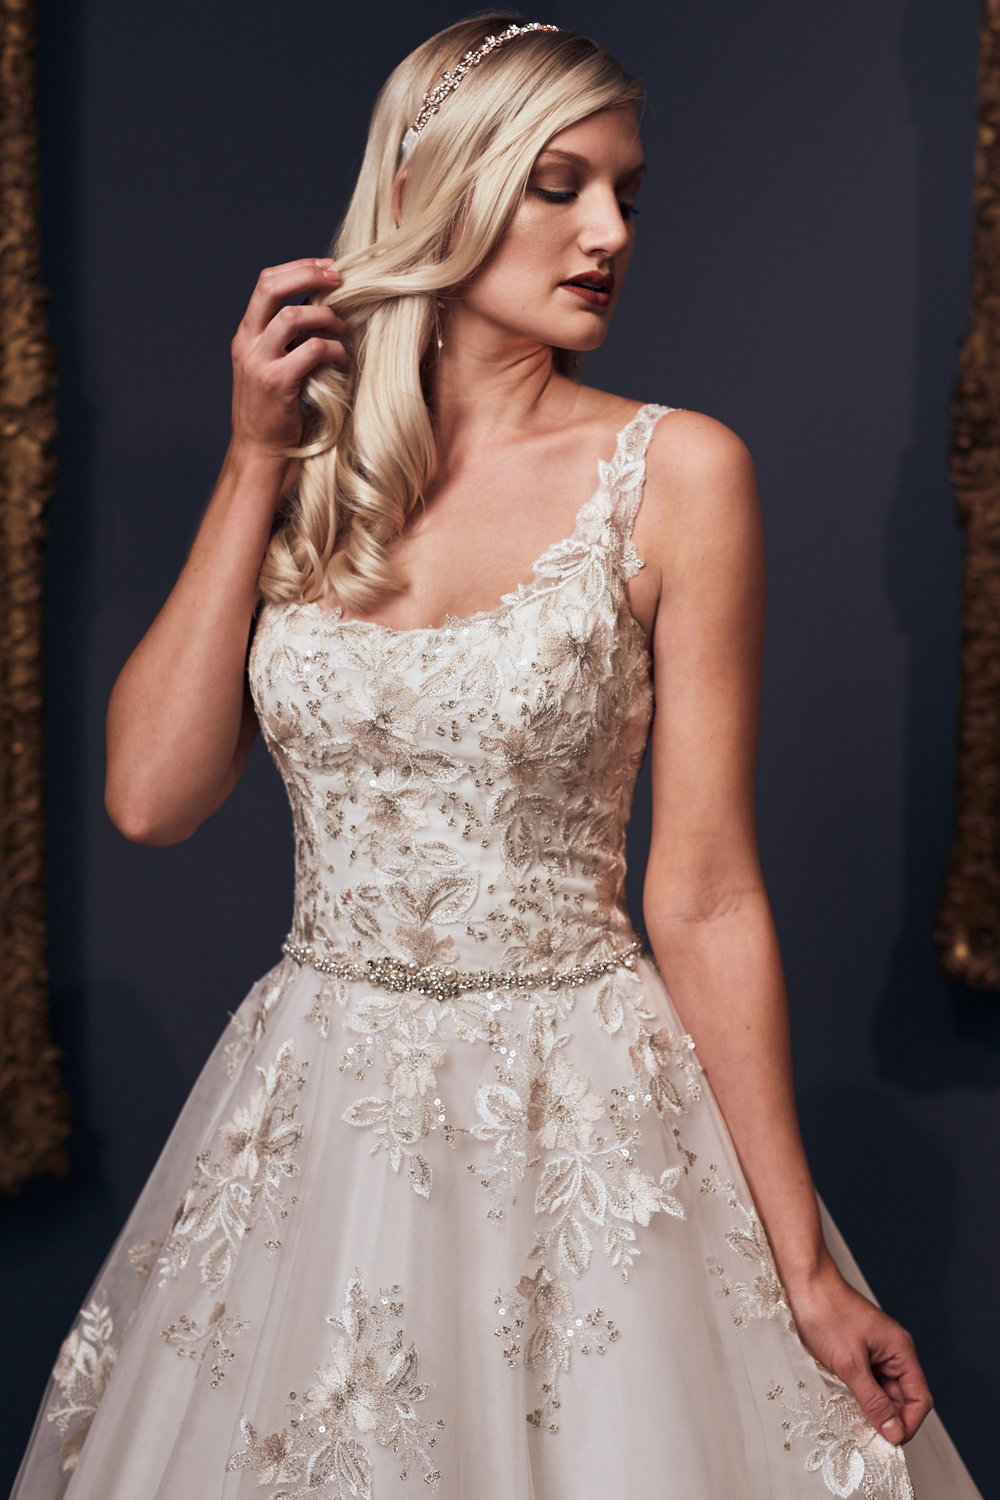 VT_Bridal_Fashion_20171218_Ryan_Noltemeyer_20_WEB.jpg